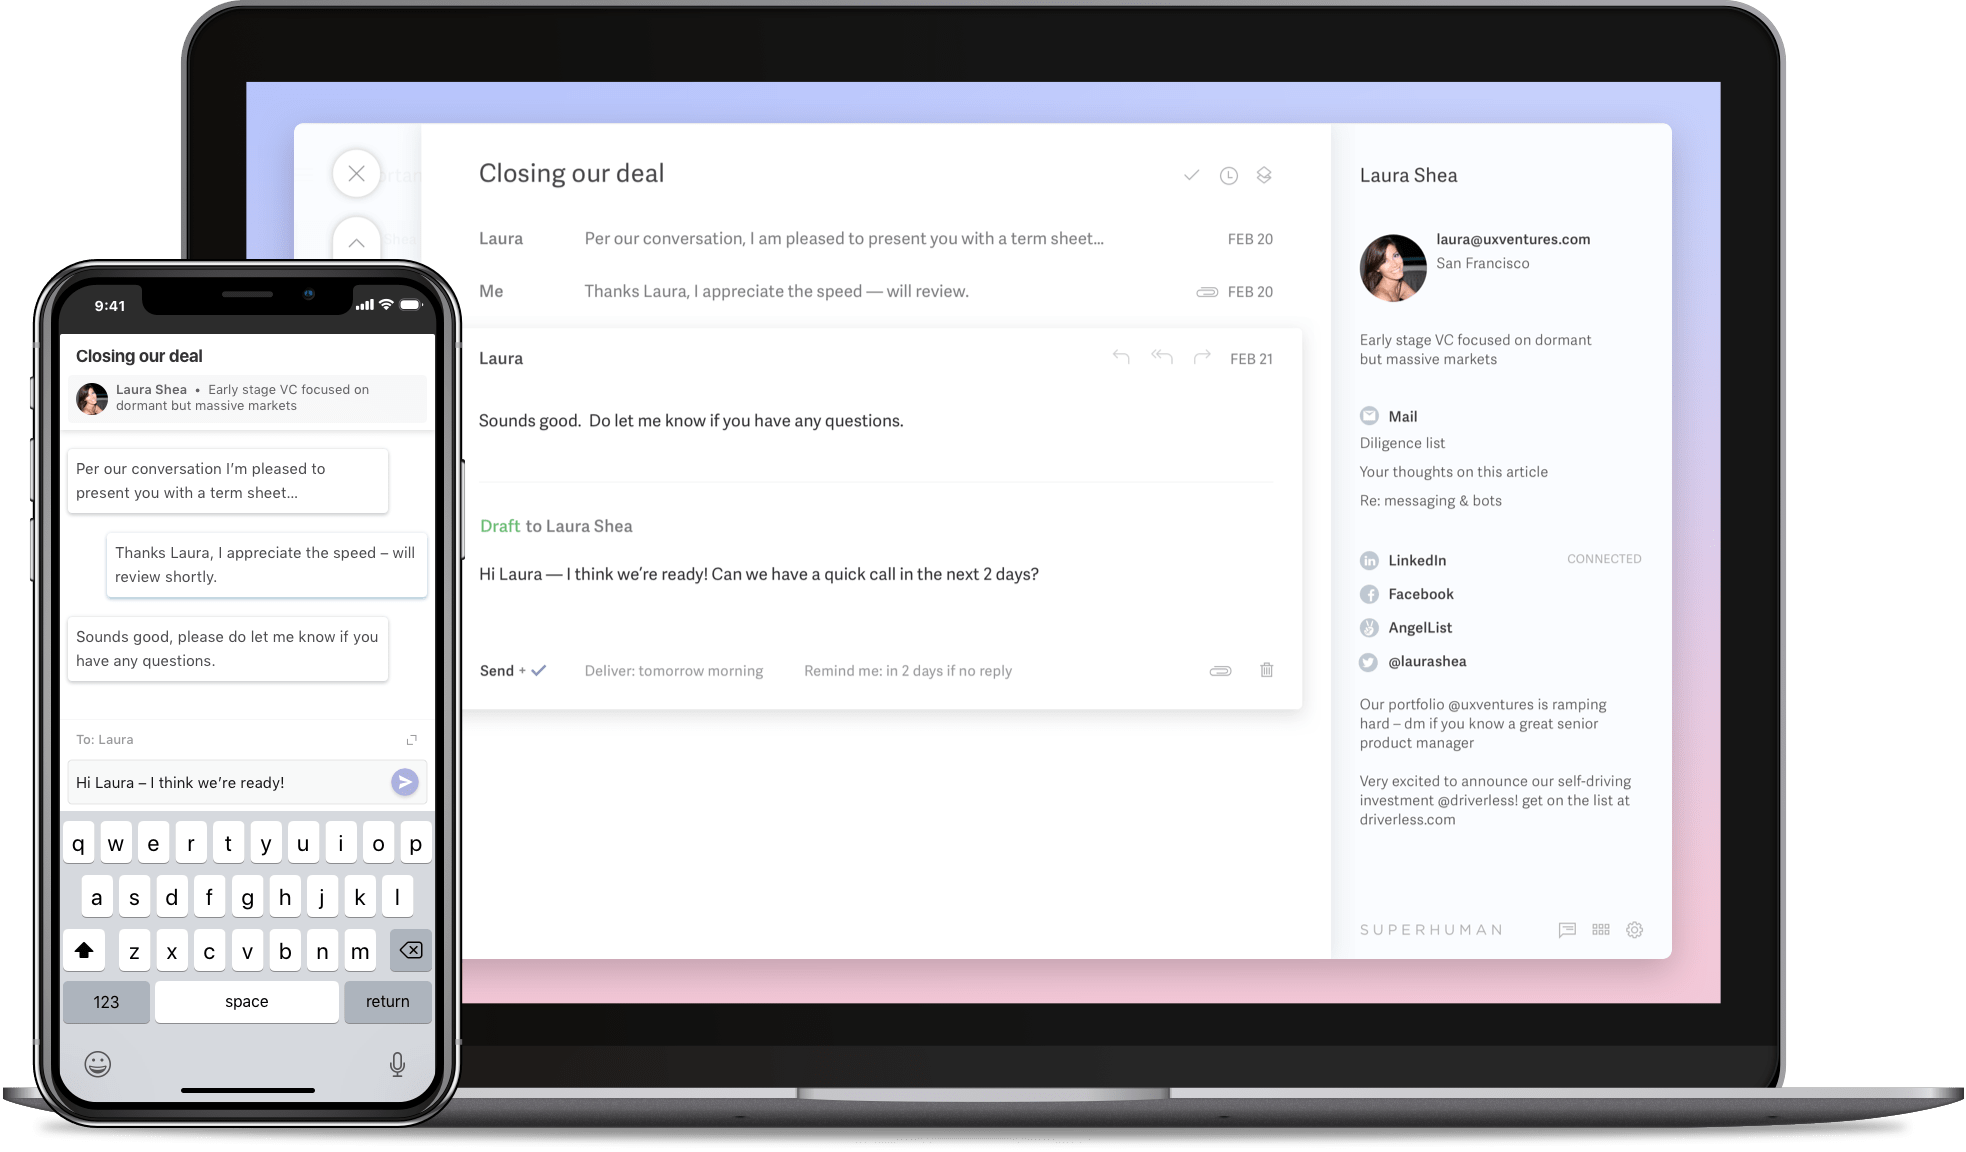 Silicon Valley's Hottest Email App Raises Ethical Questions About The Future Of Email